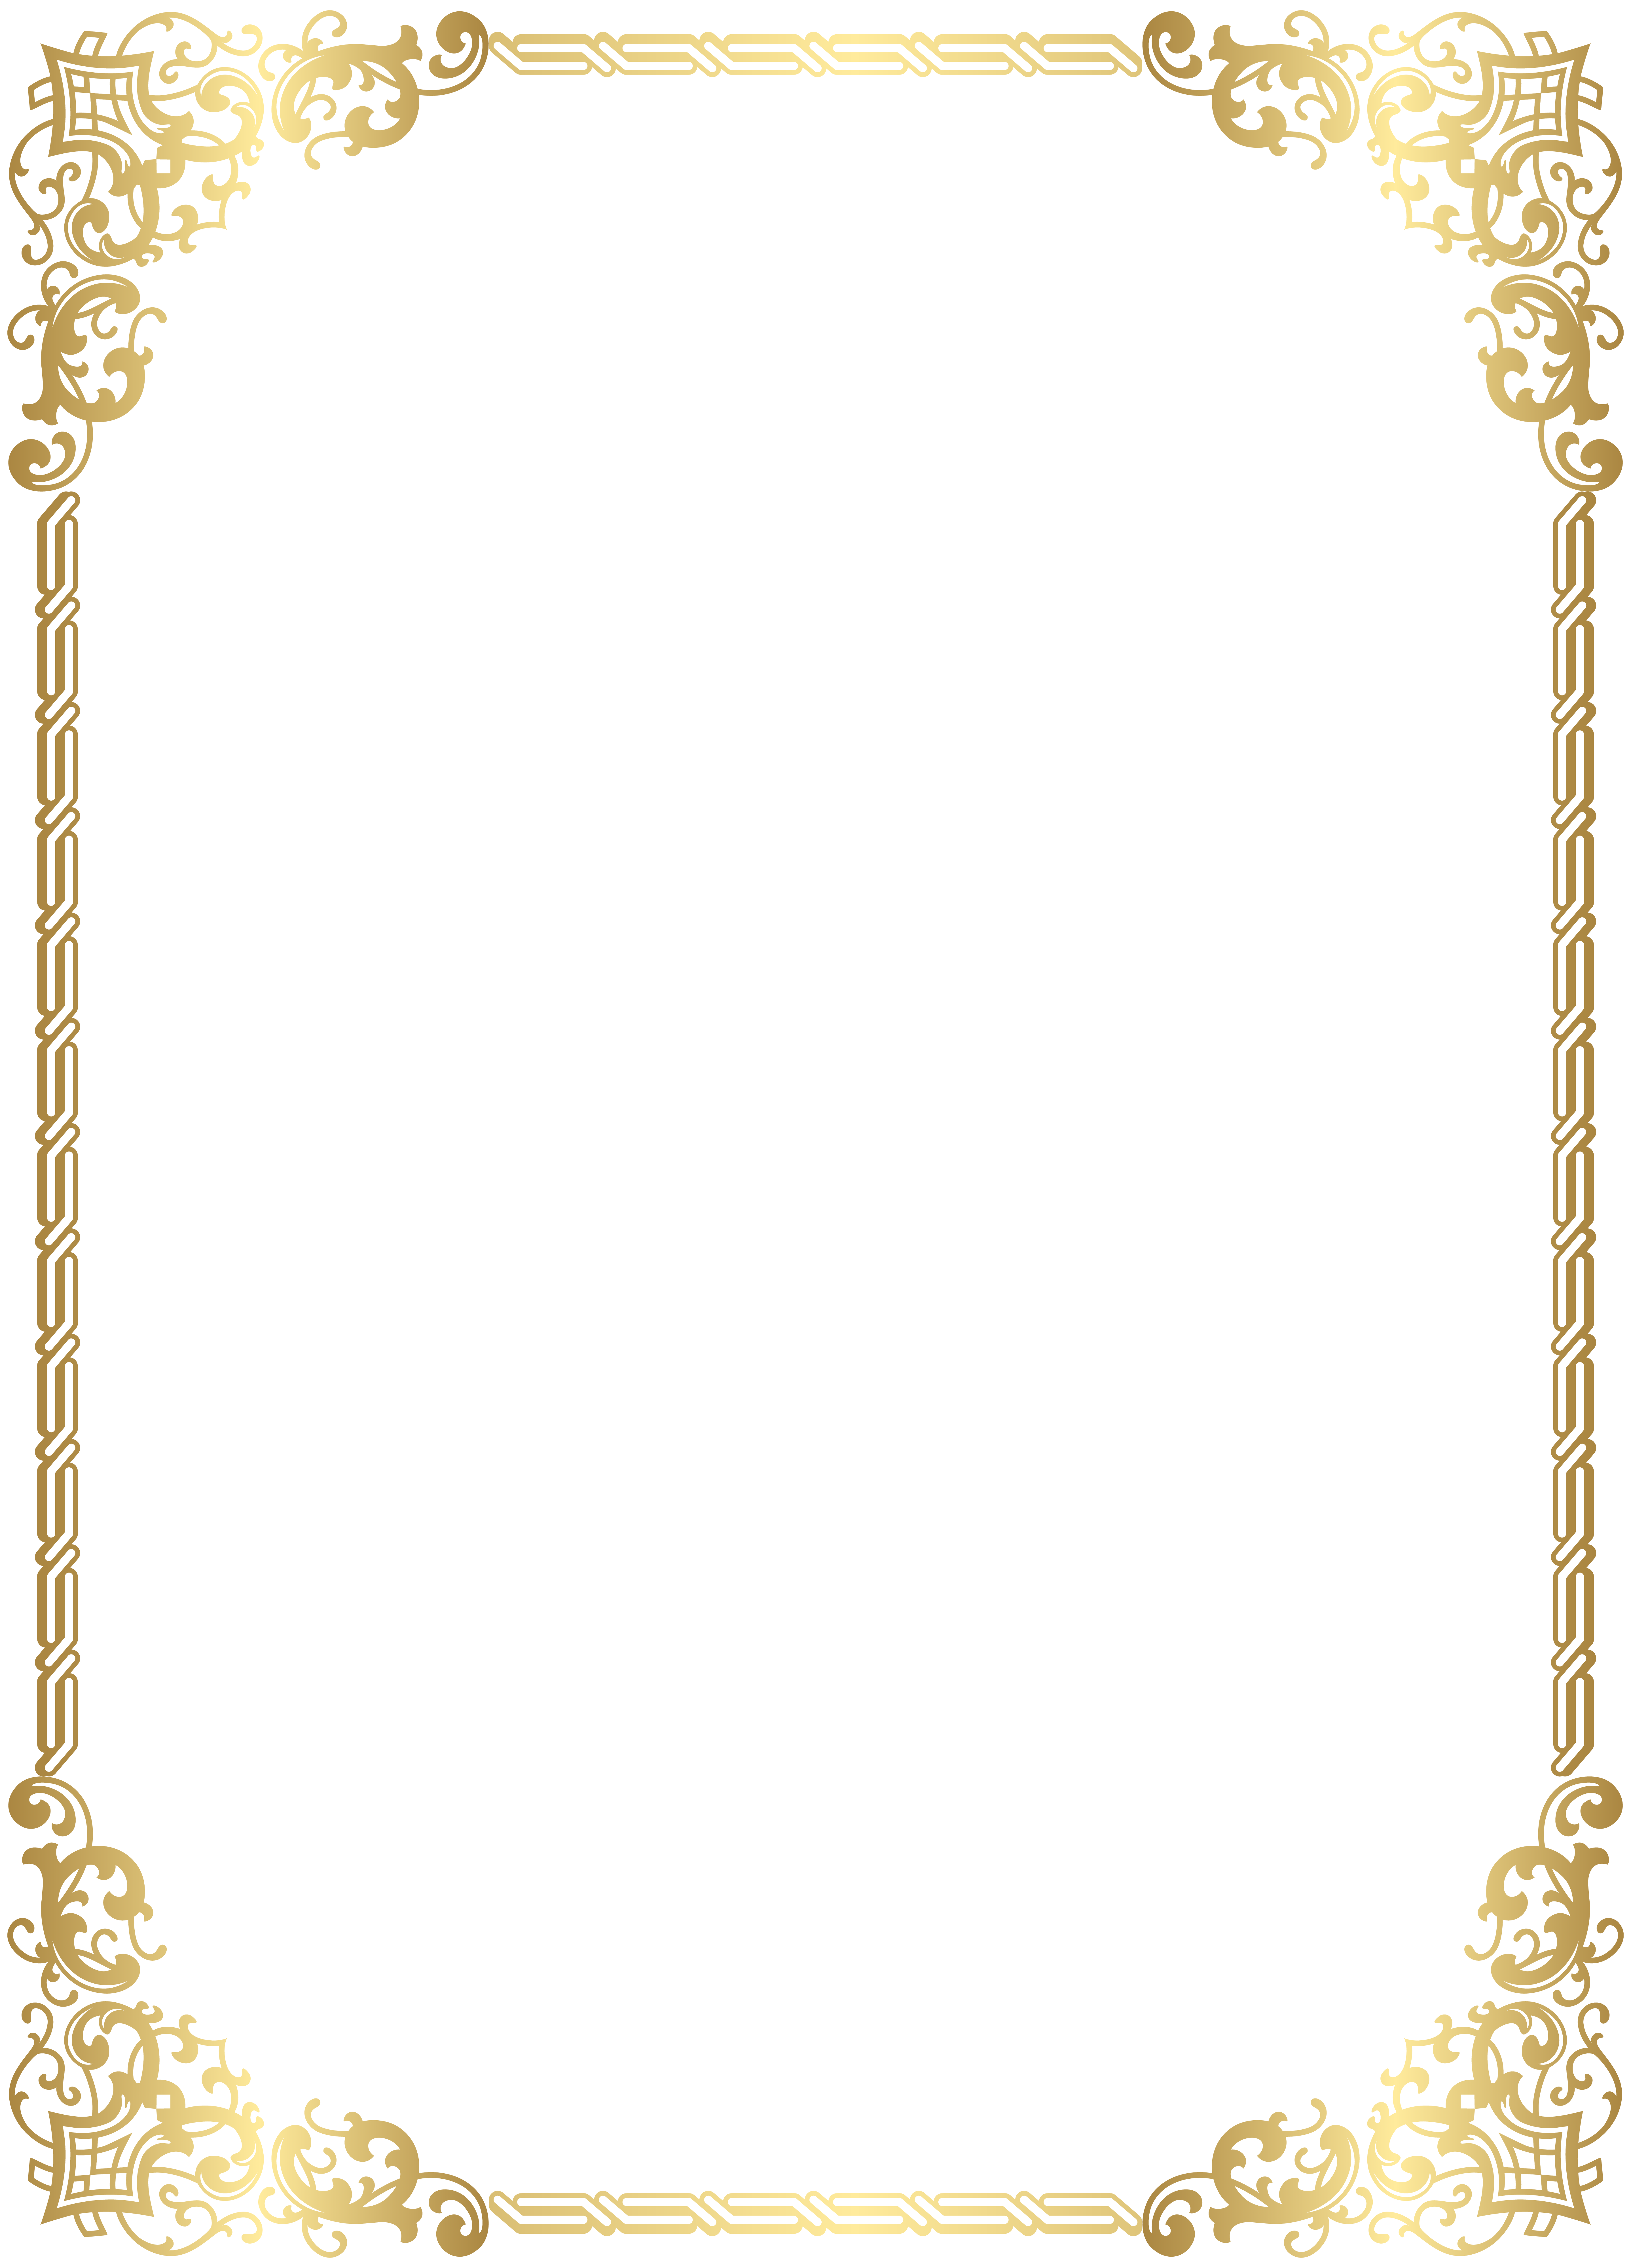 image free stock Gold border frame transparent. Free clipart backgrounds and borders